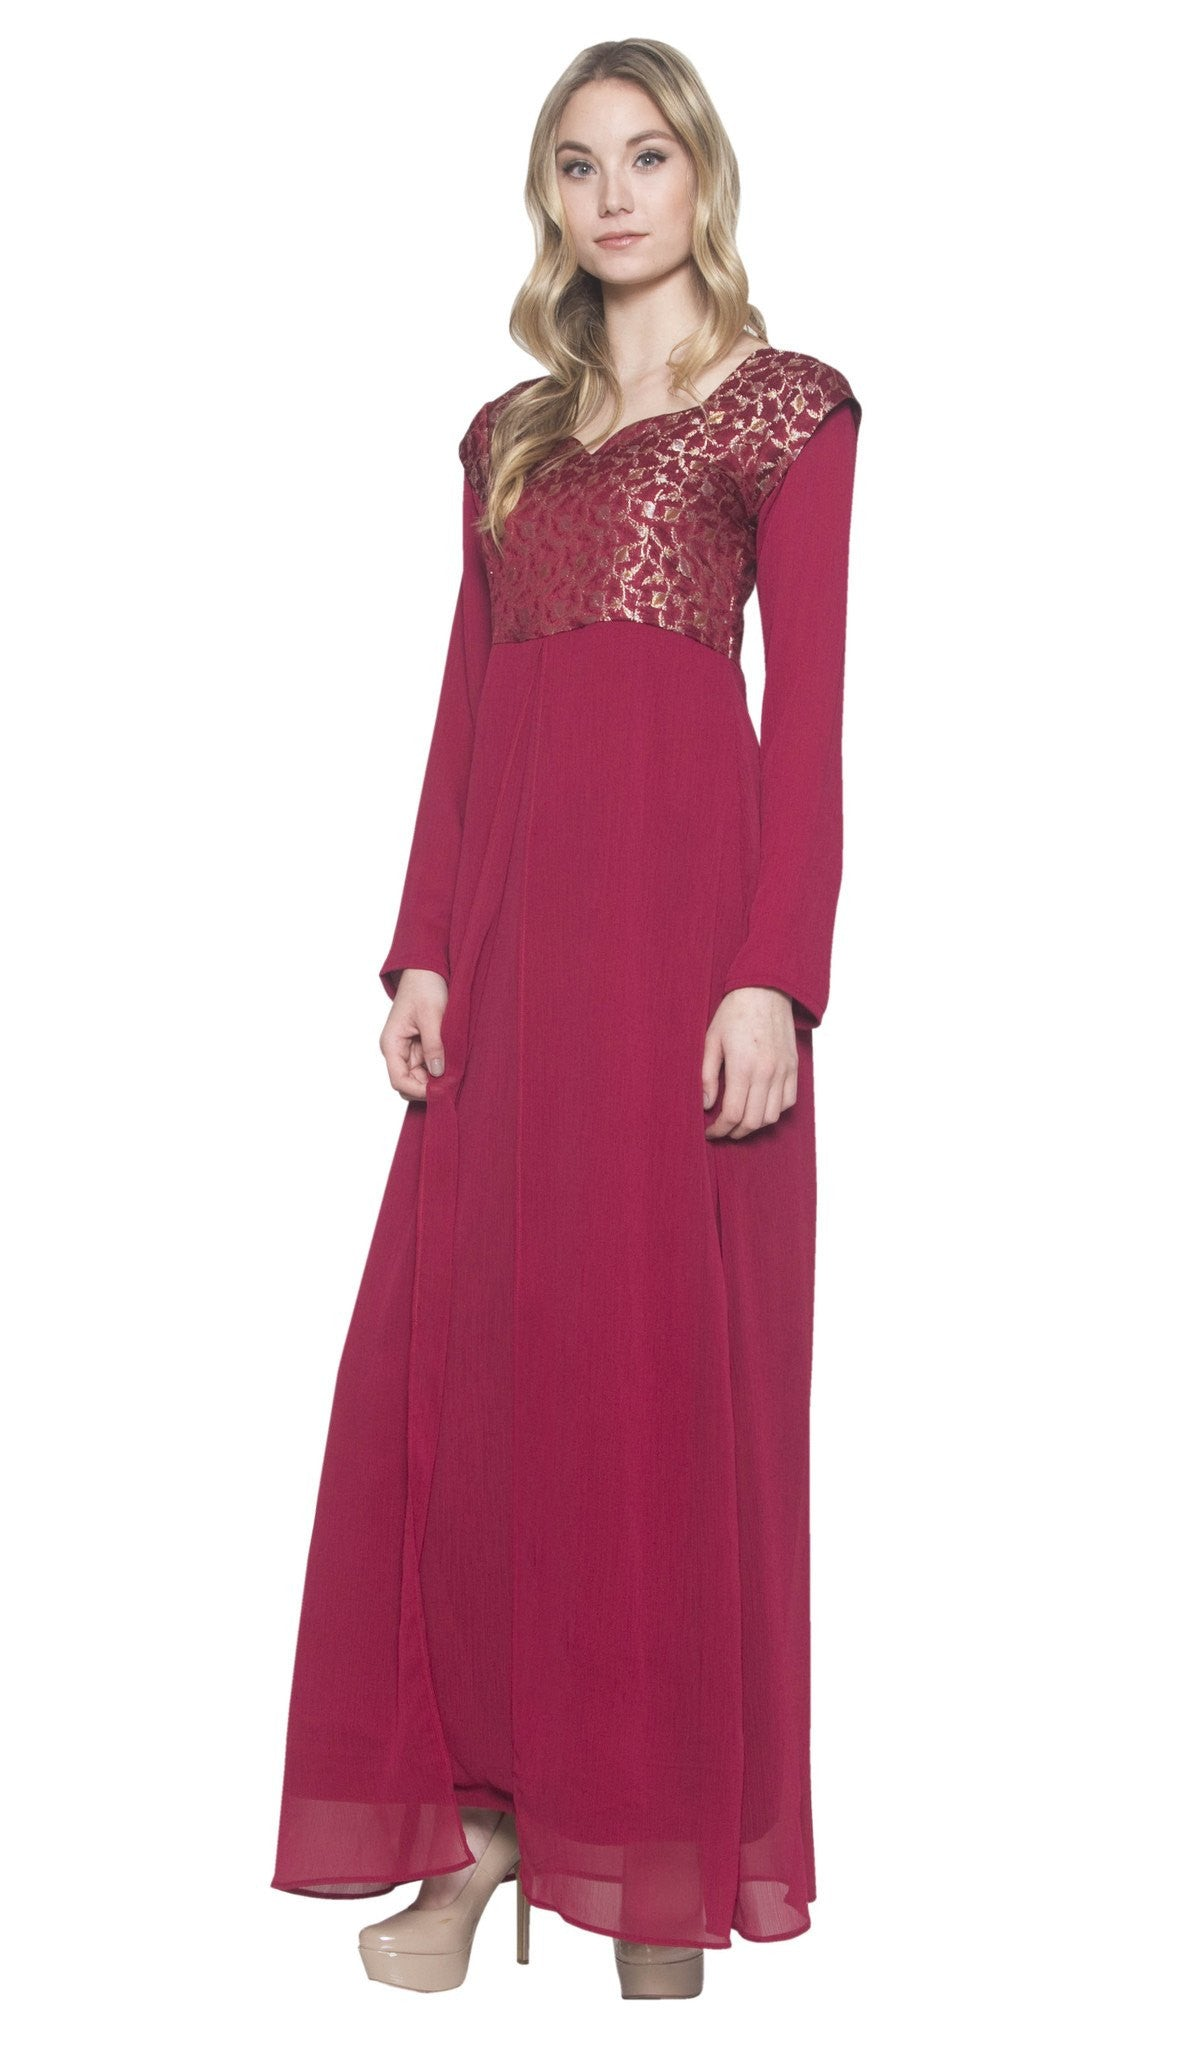 Chic Long Sleeve Modest Muslim Formal Evening Dress Maroon Red ...